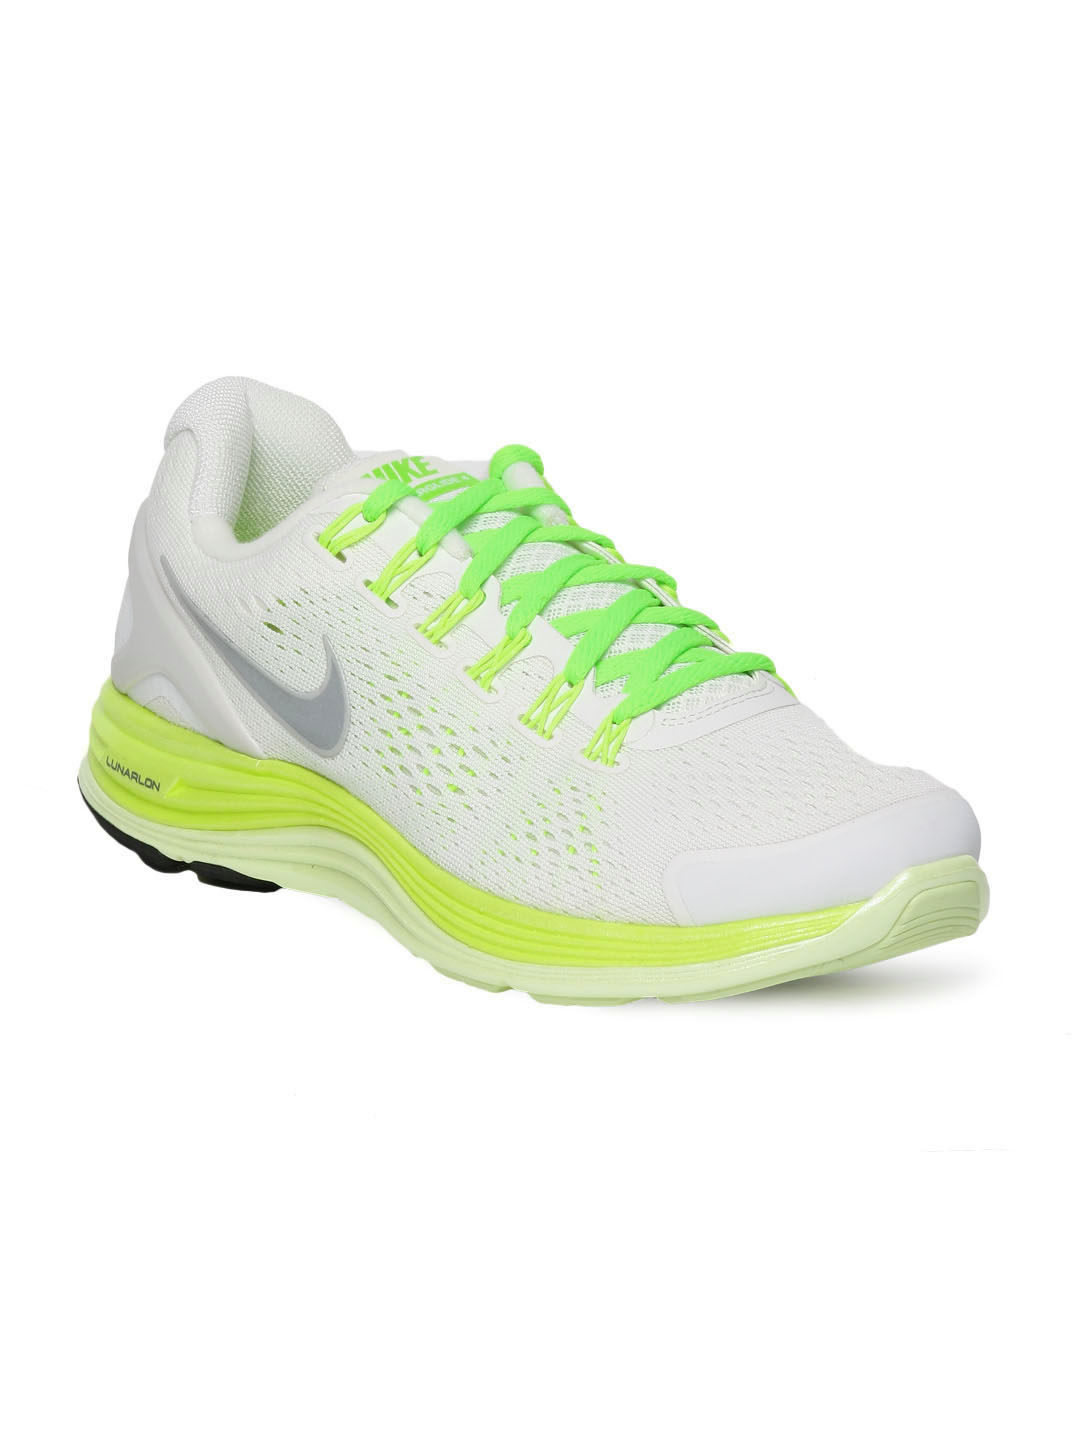 Nike Women White Lunarglide Sports Shoes